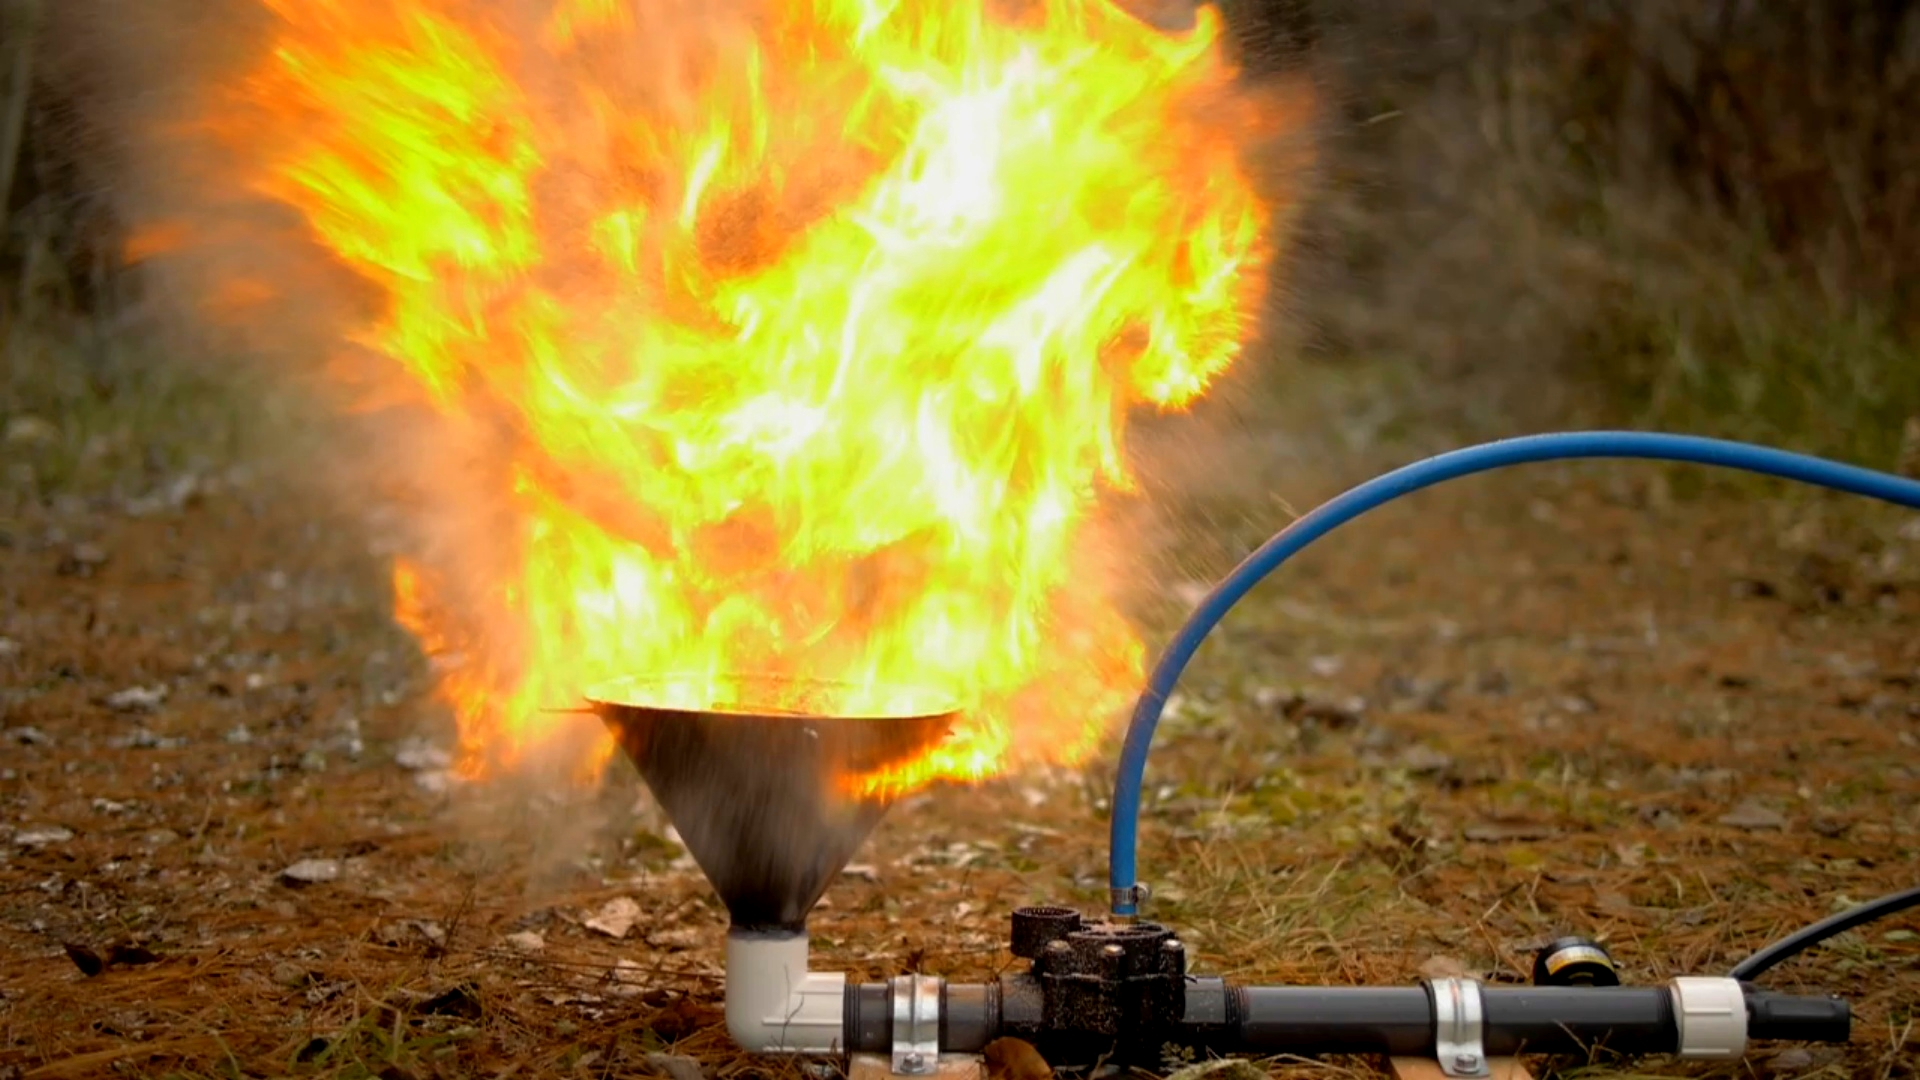 How to Make an Air Powered Explosion Simulator